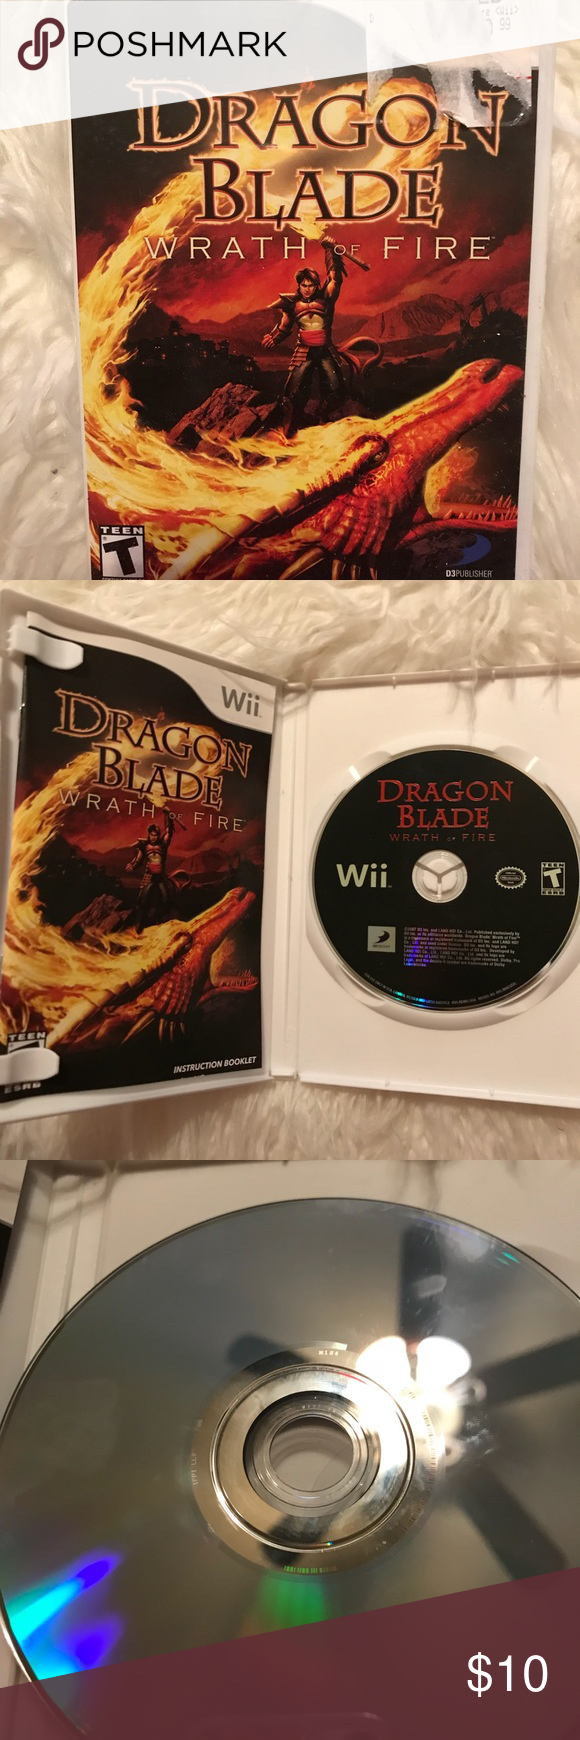 wii dragon blade wrath of fire game | dragon blade, conditioner and ea